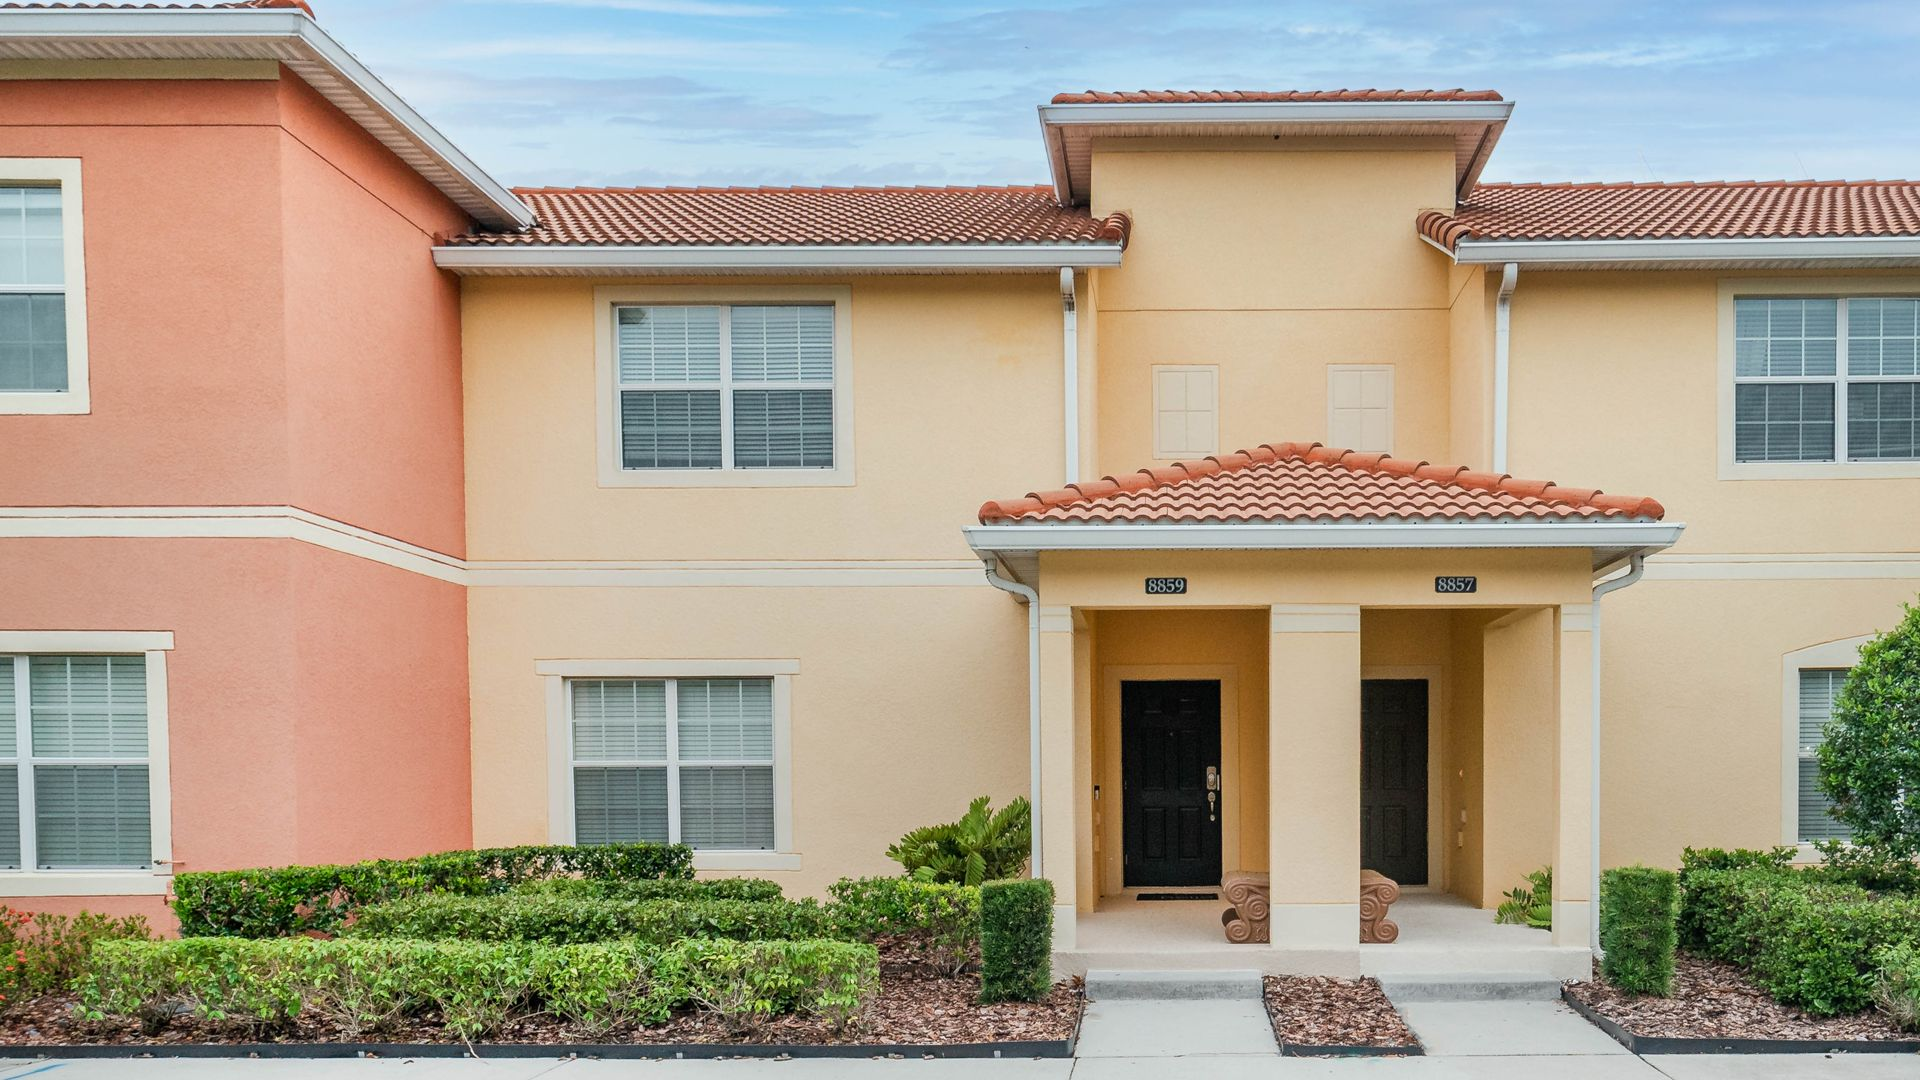 8859 Candy Palm Road-200674